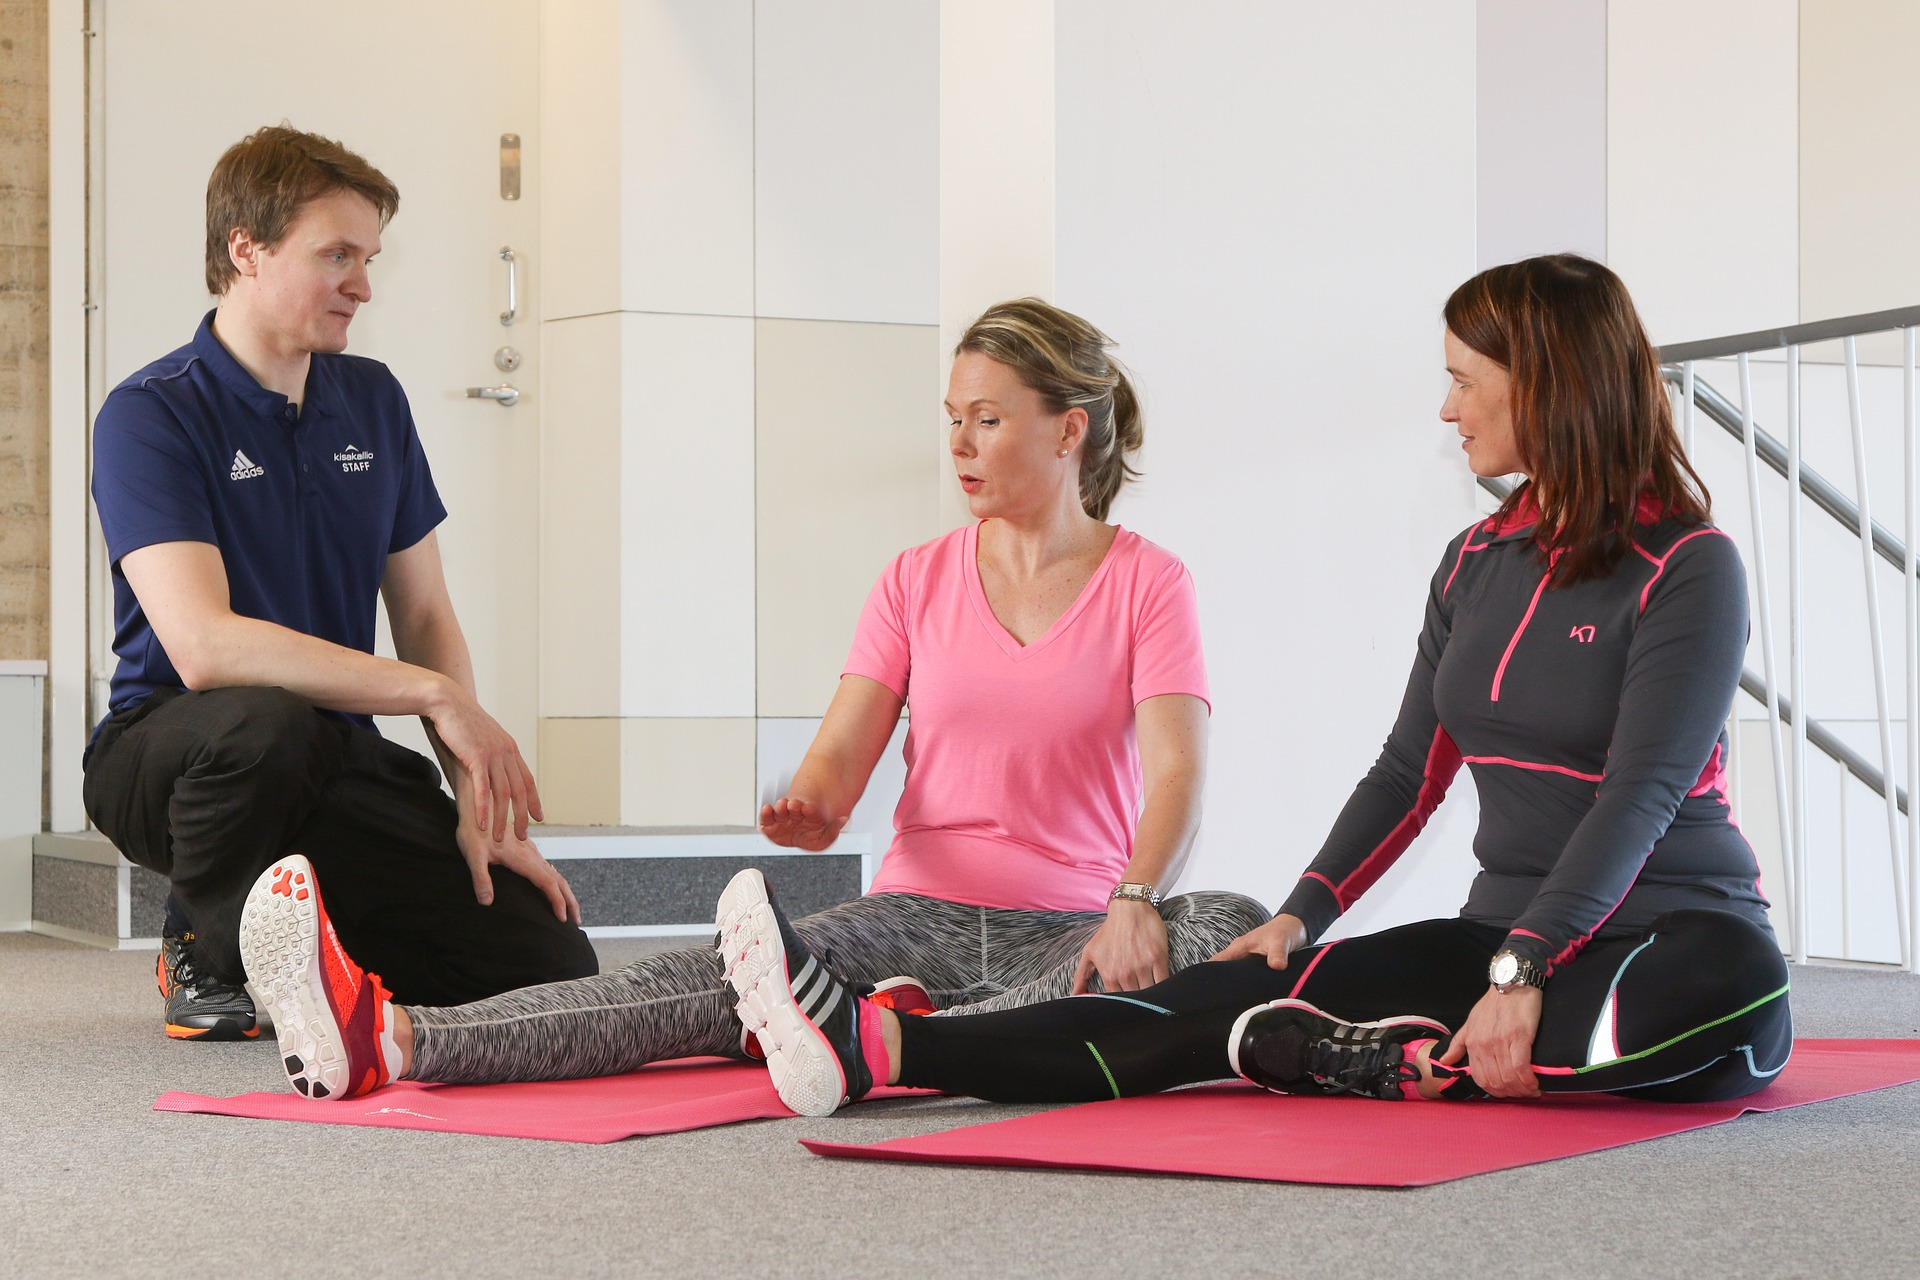 Personal training lowers injury rate.